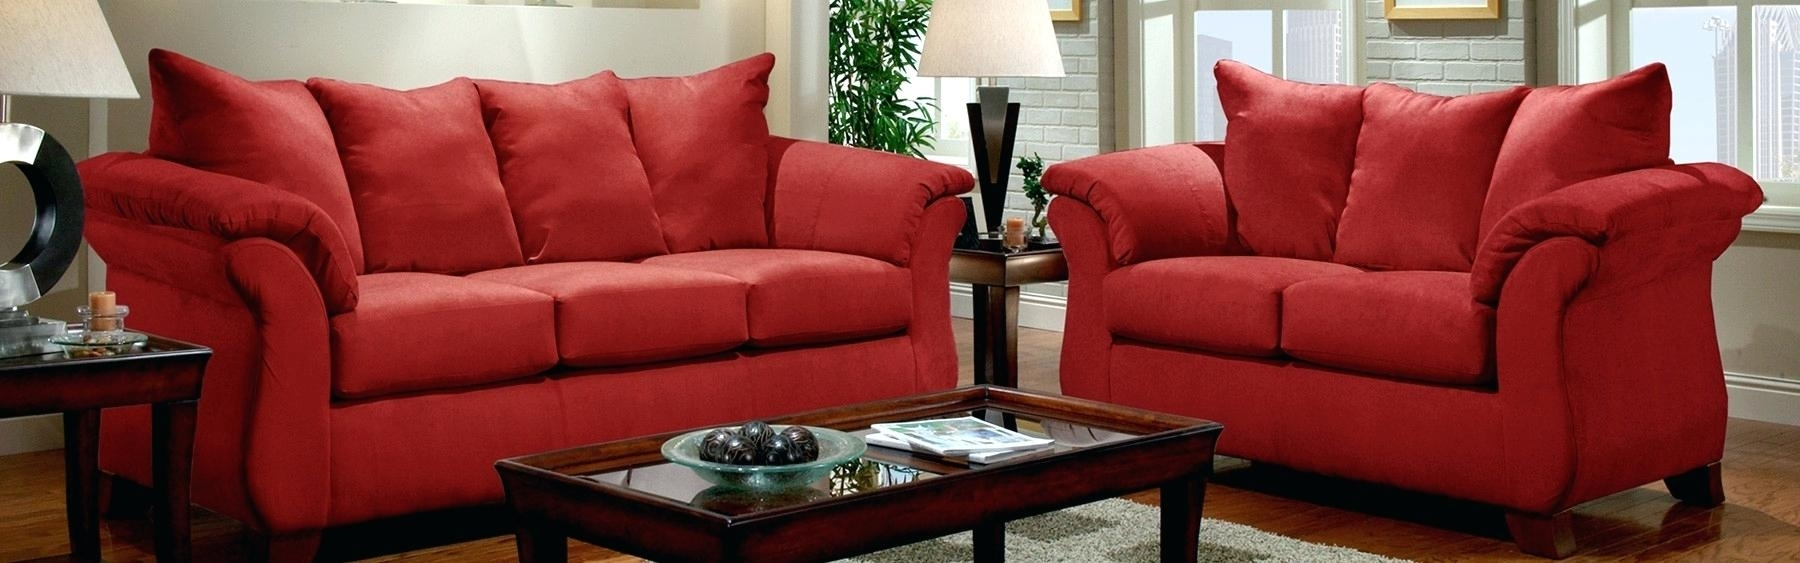 Furniture Stores Lubbock Tx Ashley Store Texas Unfinished – Bikas Inside Lubbock Sectional Sofas (View 8 of 10)